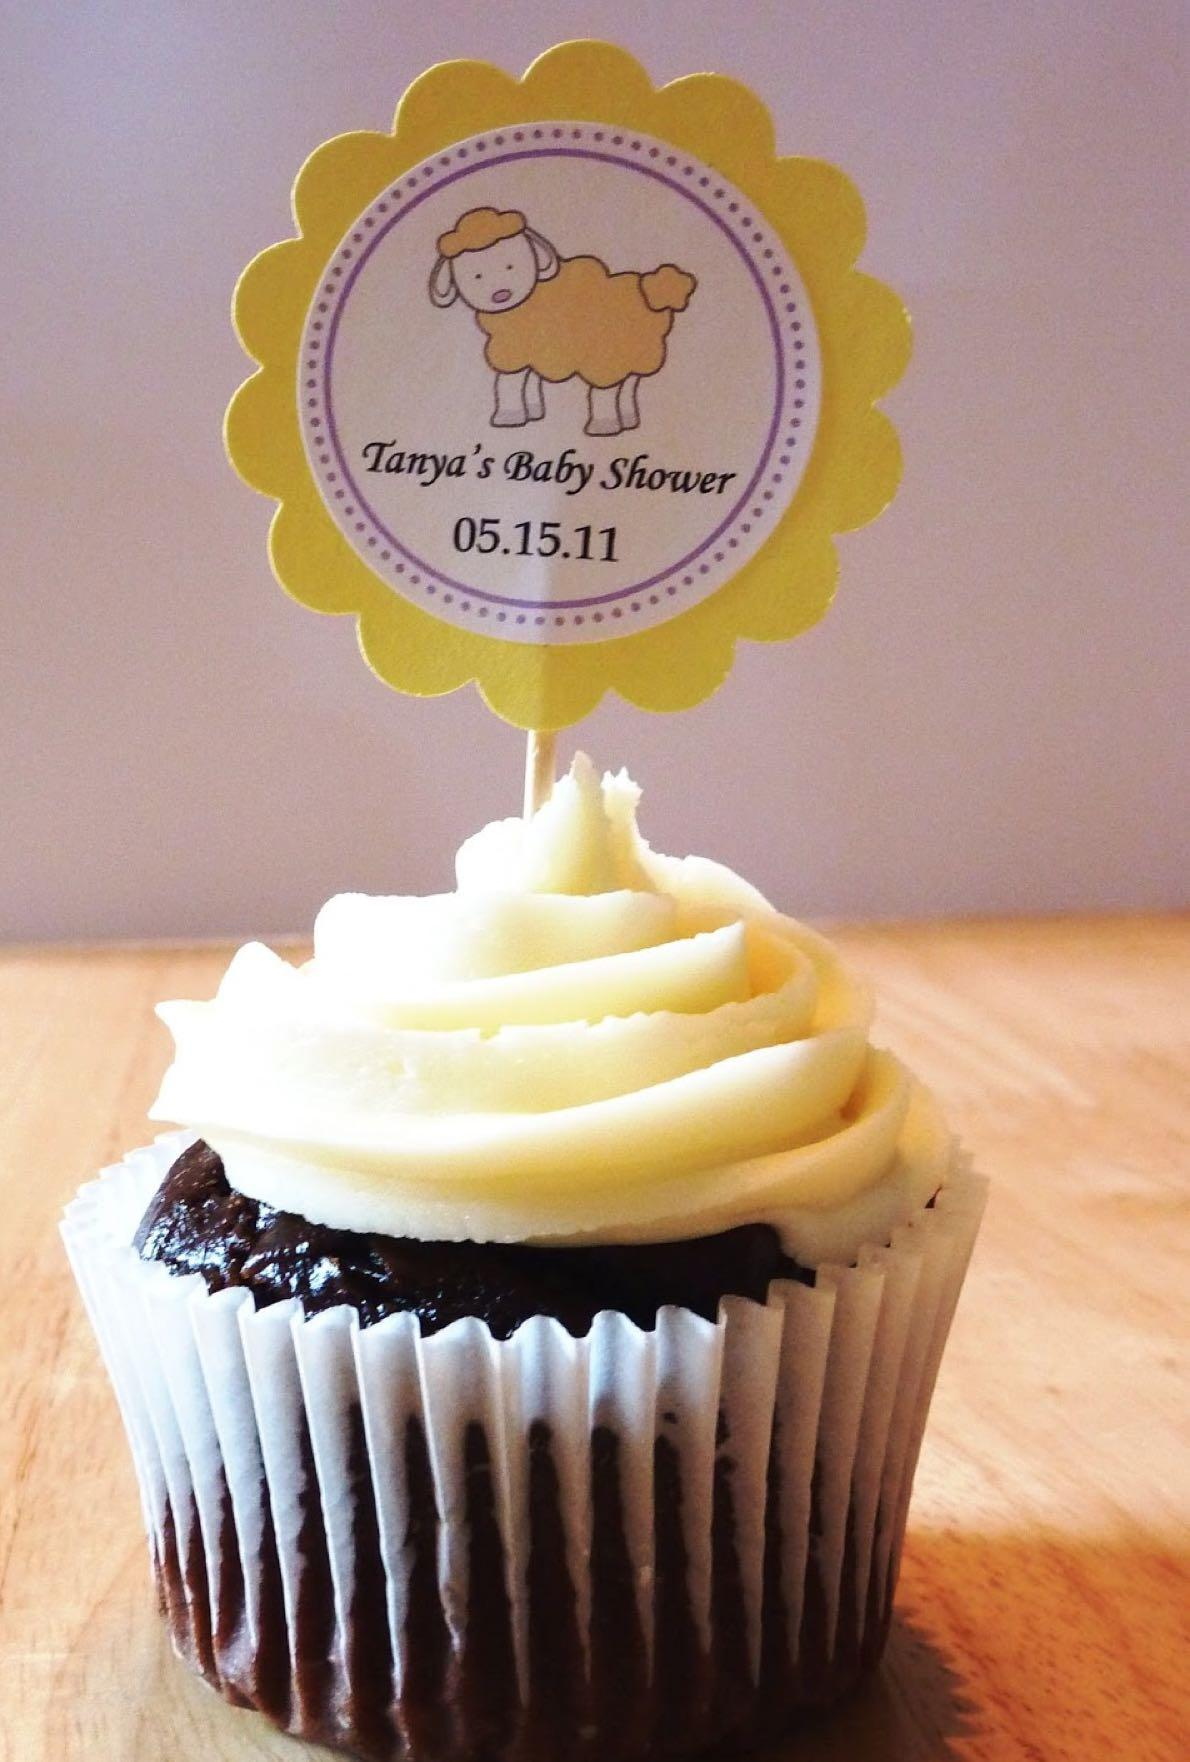 Halal cupcakes & pastry